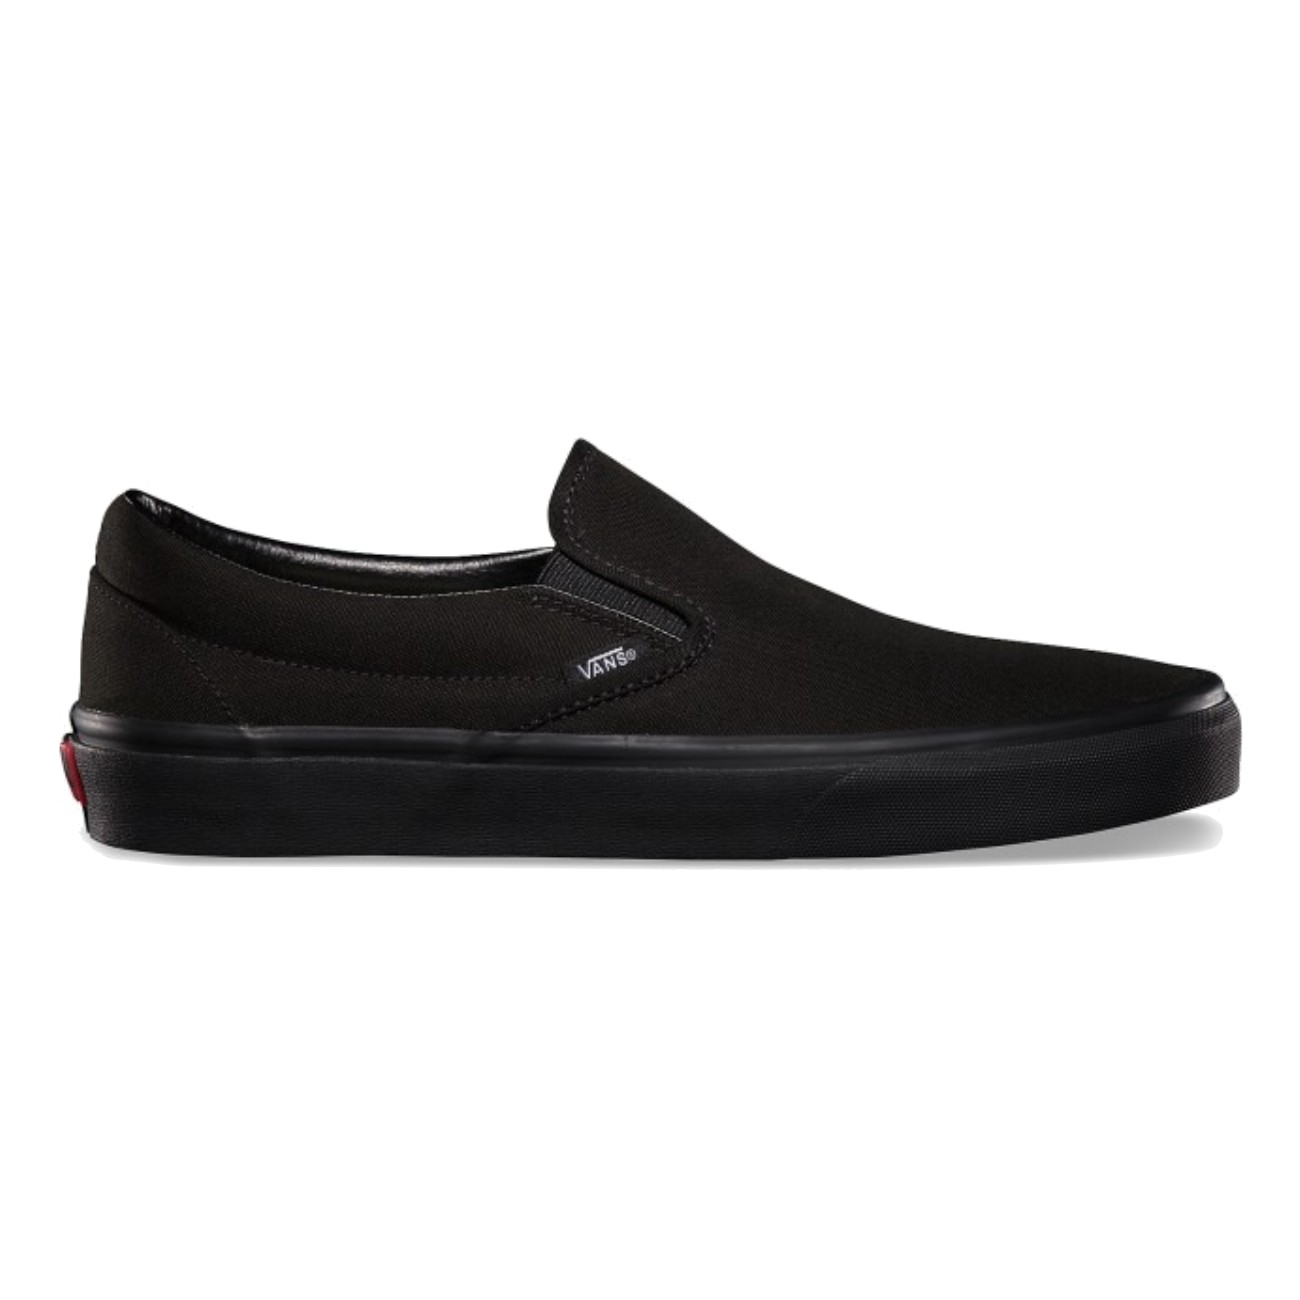 vans classic slip ons shoes sneakers trainers s